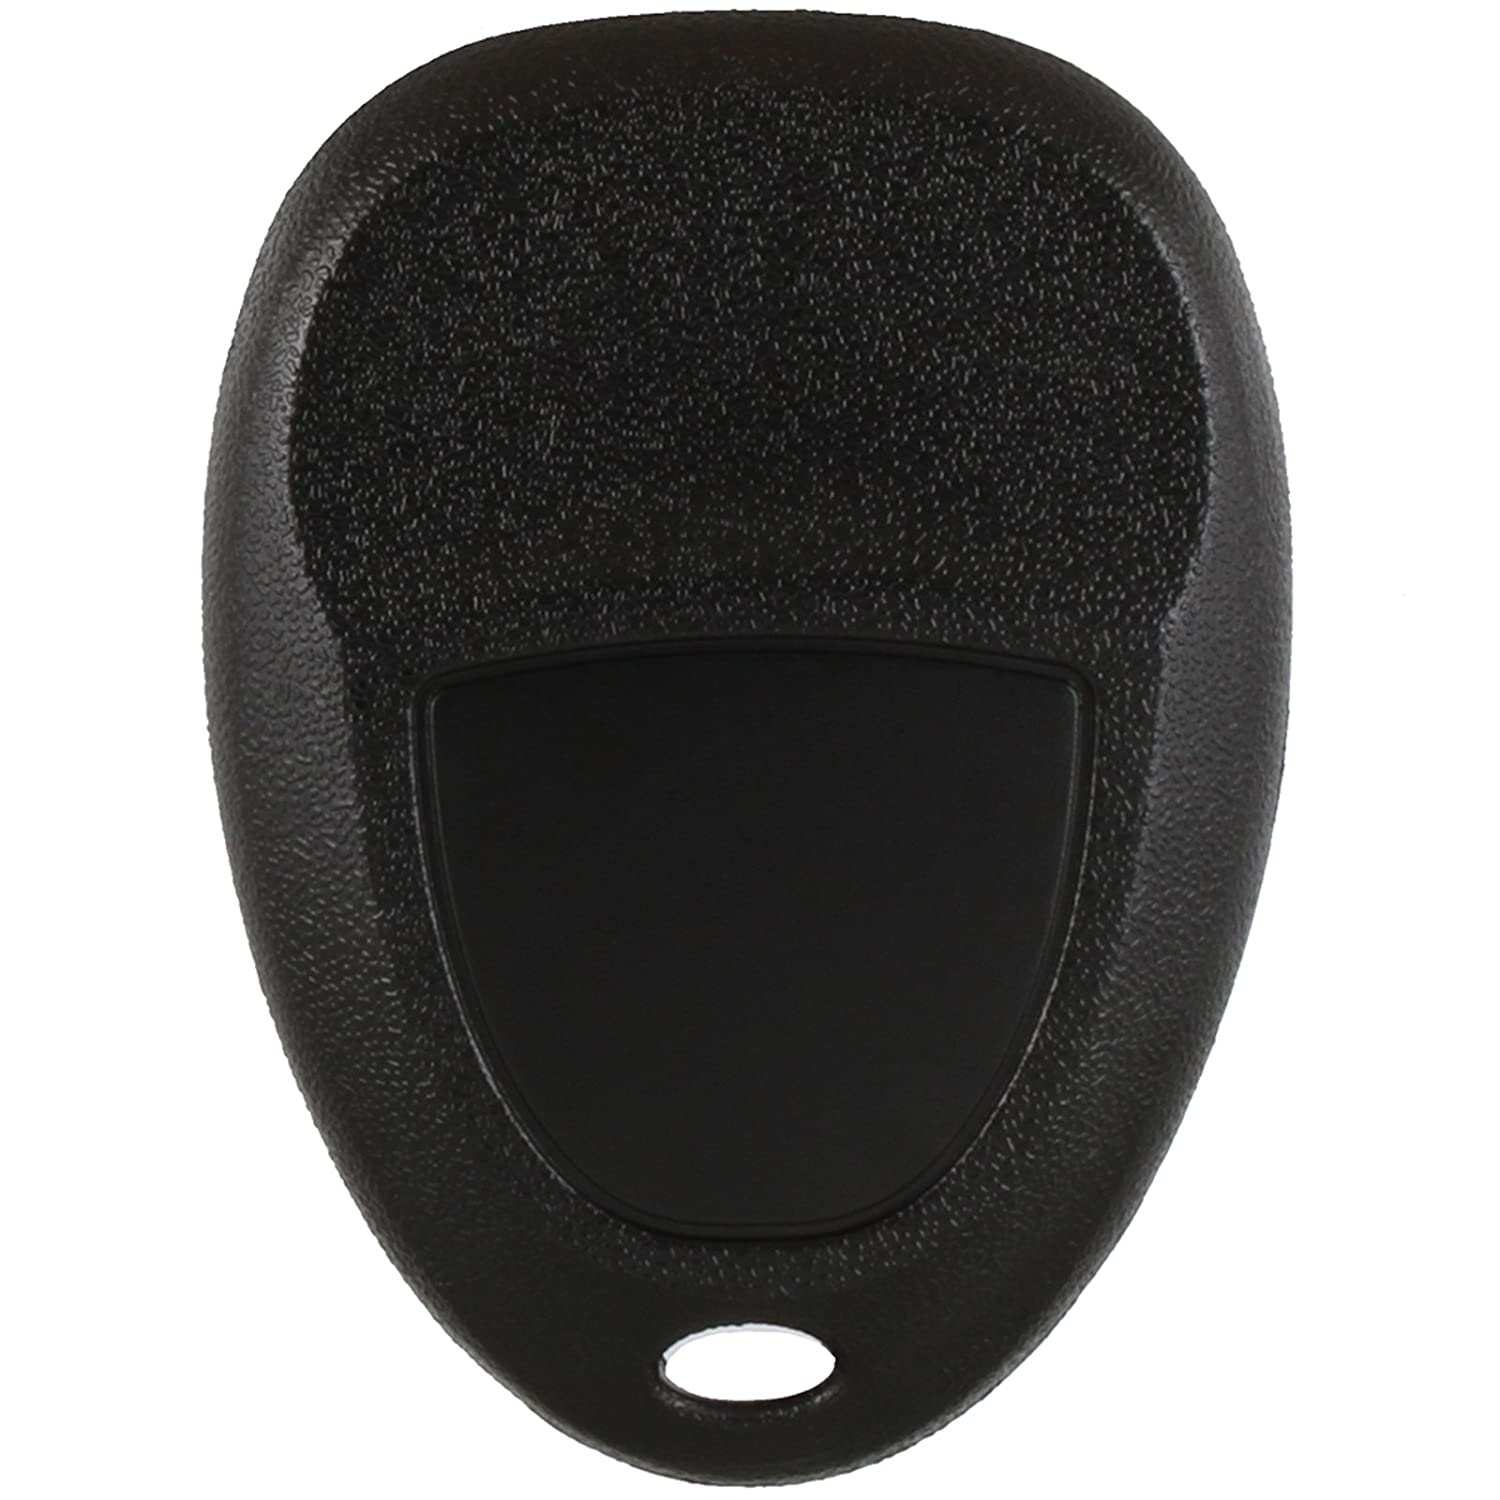 15252034 Discount Keyless Replacement Shell Case and Button Pad Compatible with 10305091 22733523